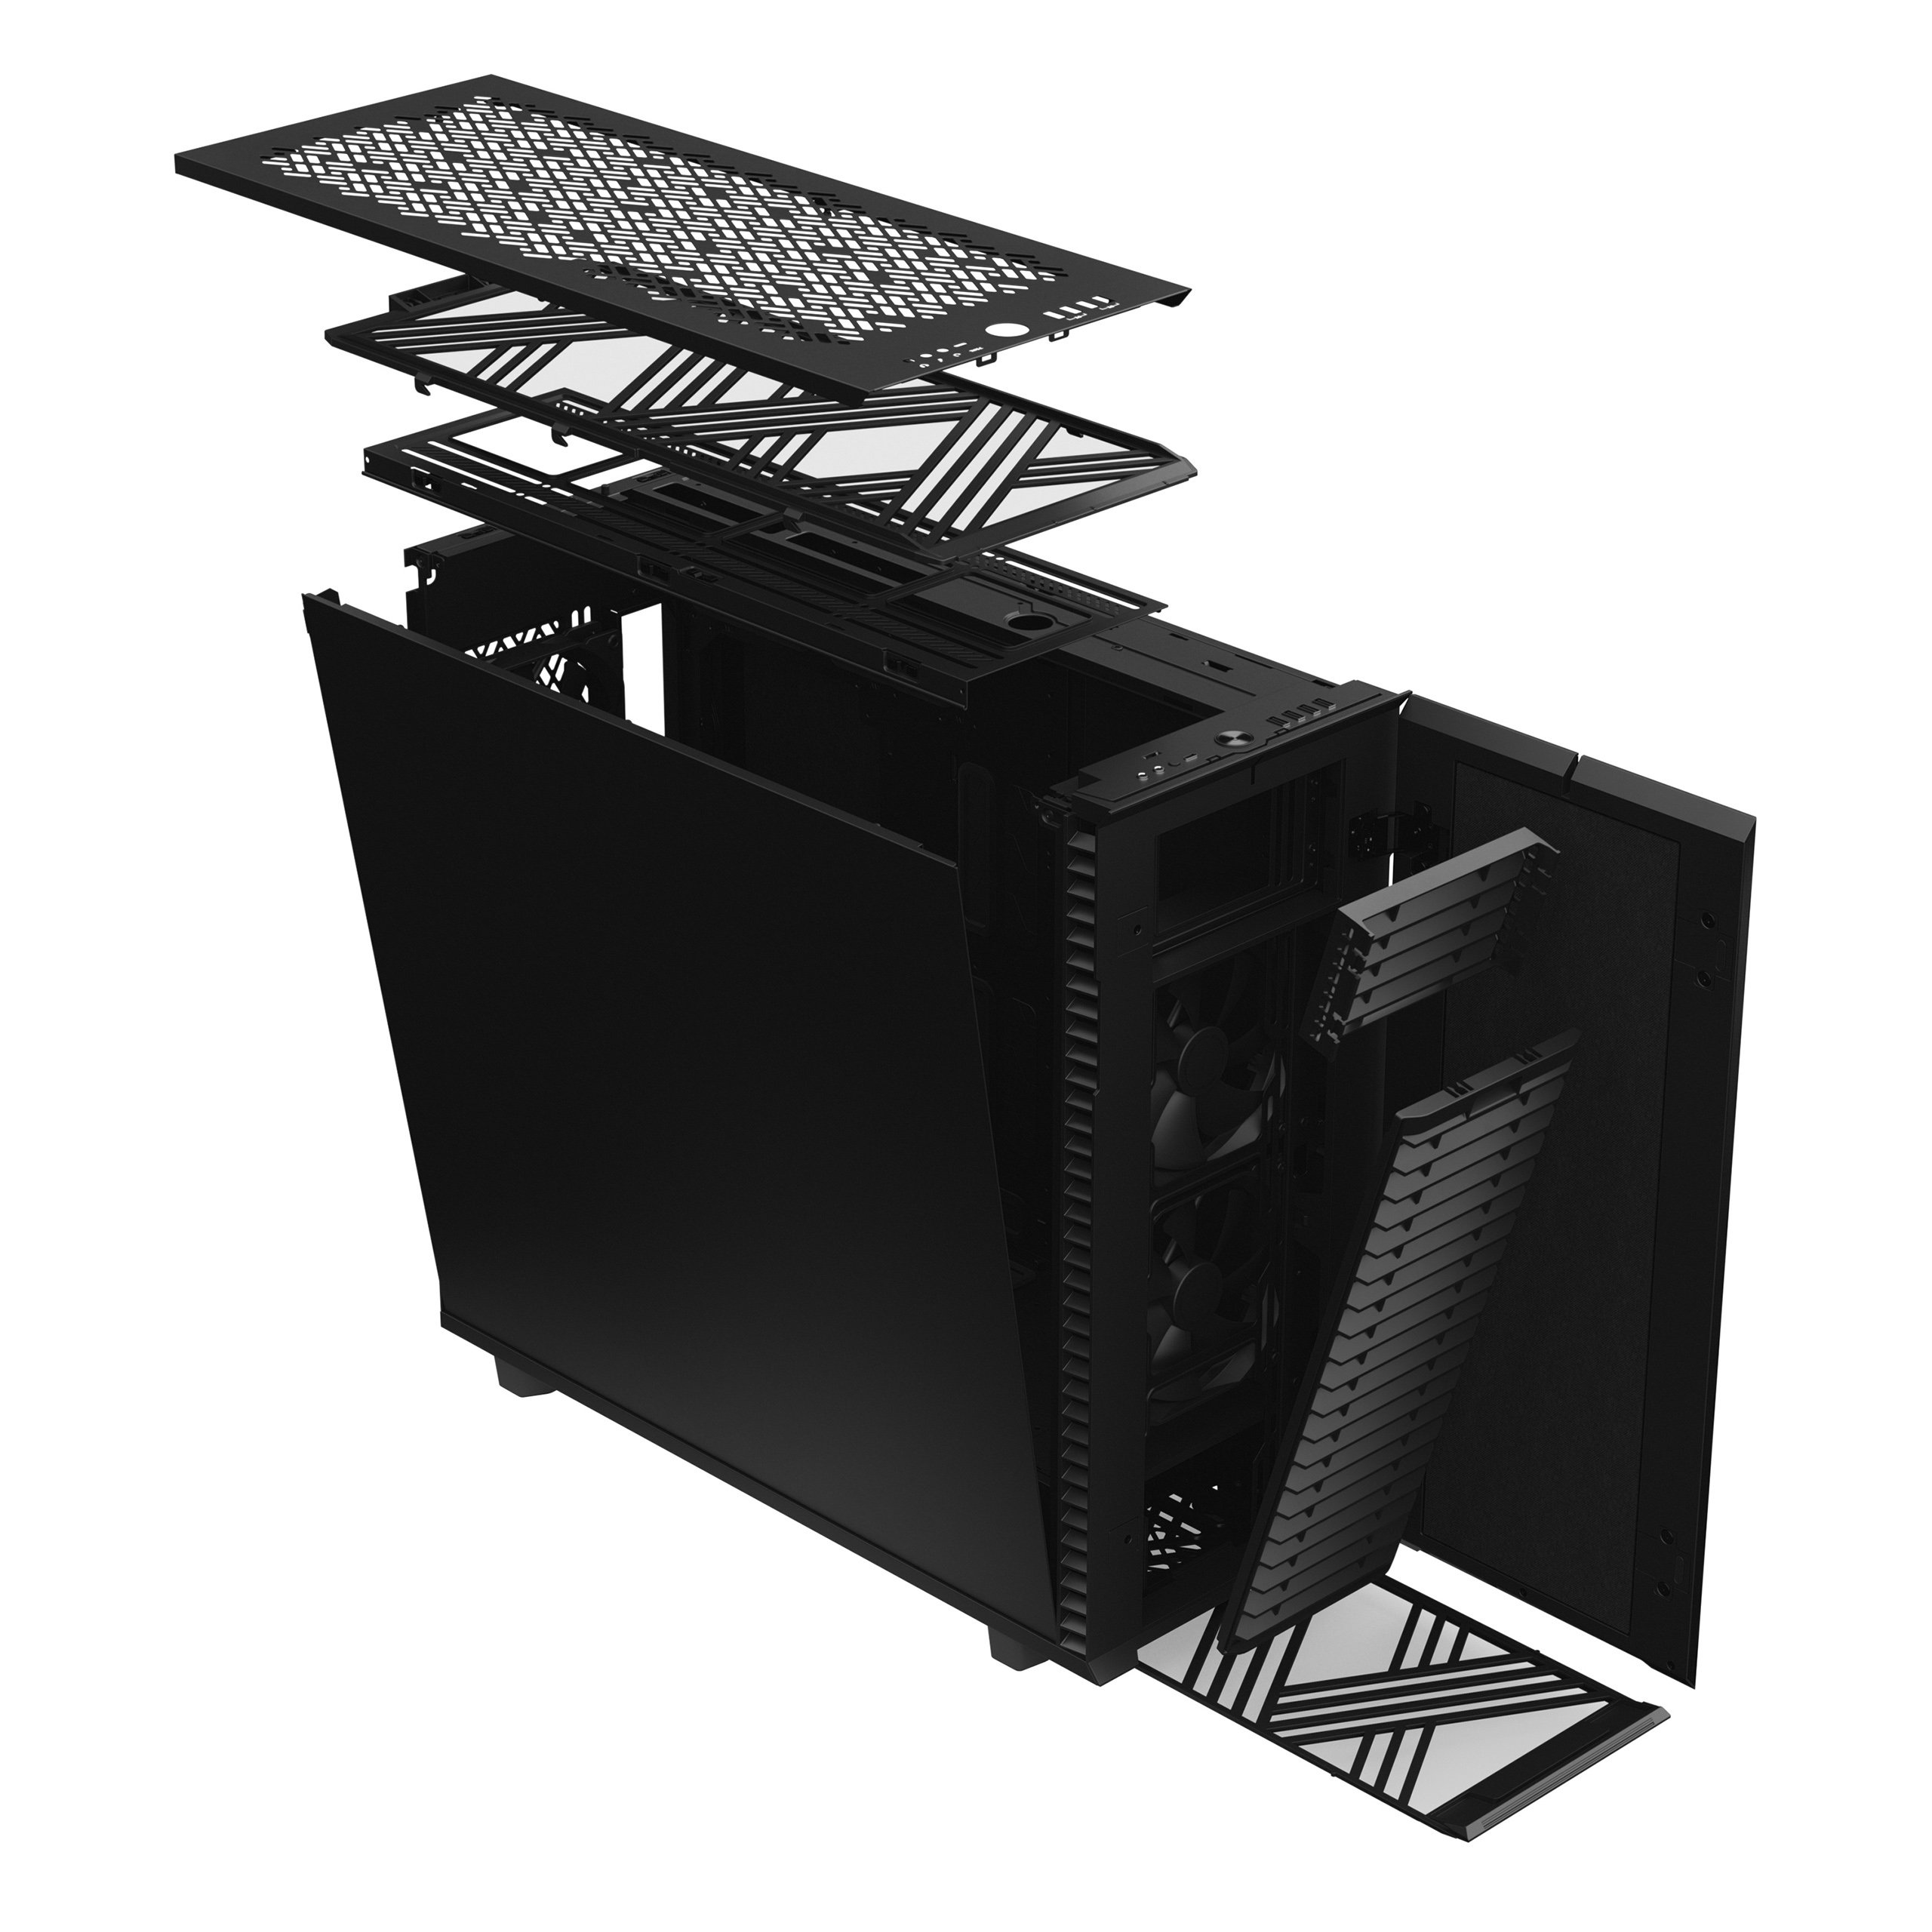 Cooling the GPU through Vents in the Pc Case - Fractal Design Define 7 XL